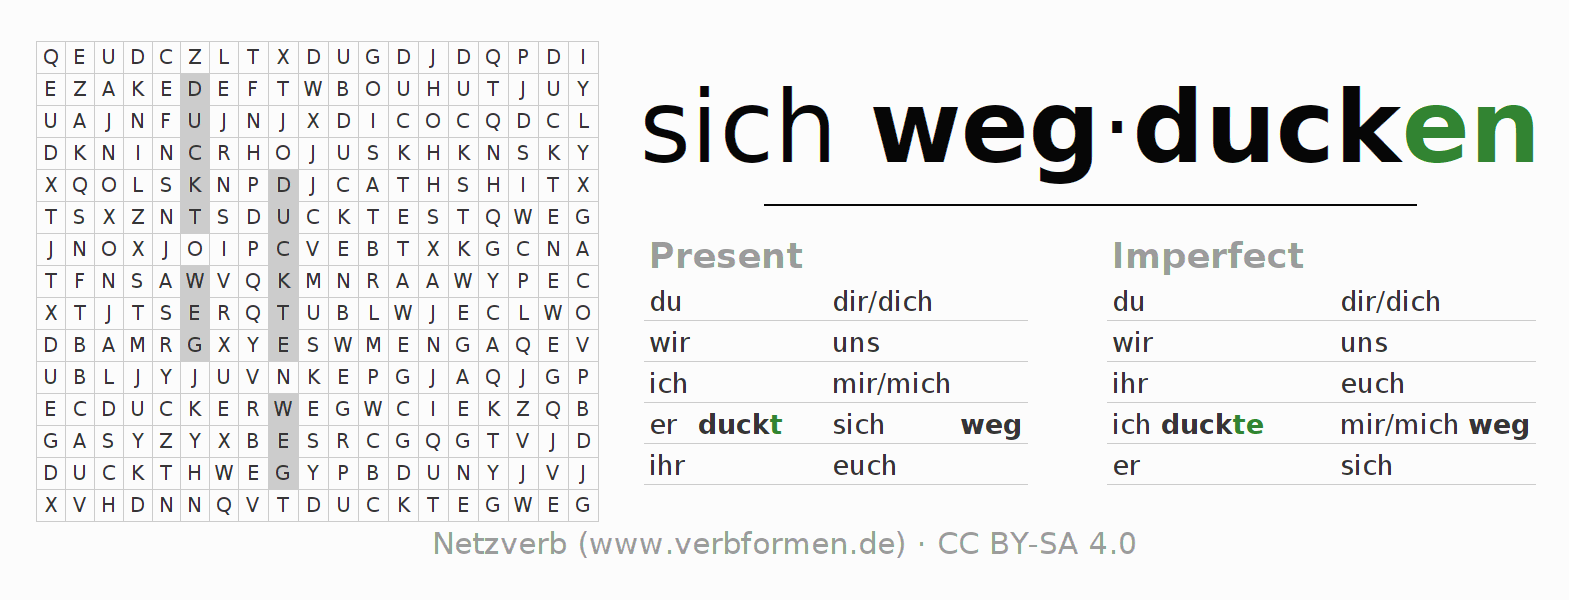 Word search puzzle for the conjugation of the verb sich wegducken